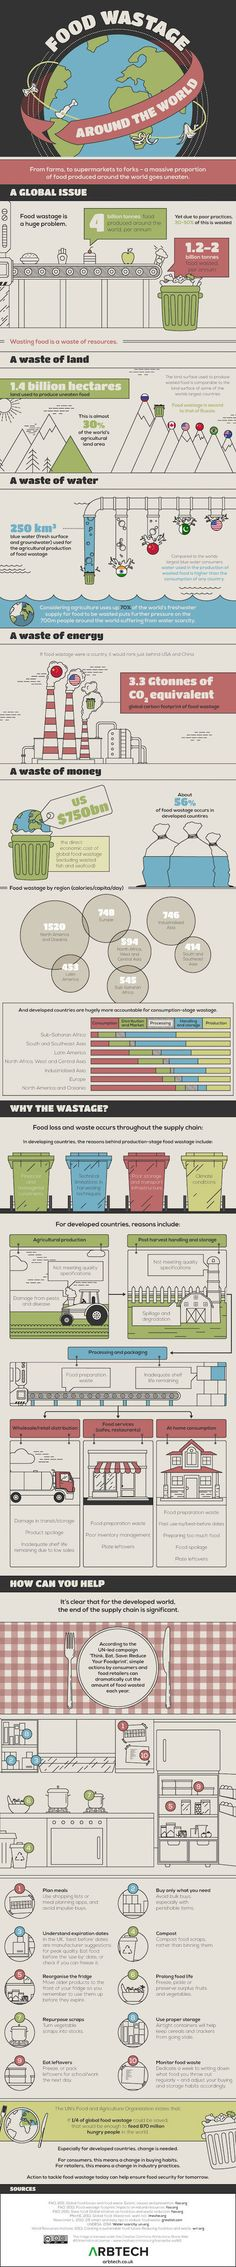 INFOGRAPHIC: How food waste has become a huge global problem... Every year, an estimated 1.2 to 2 billion tons of food is wasted—a massive amount of food that, if saved, would be more enough to feed the world's hungry. Food waste isn't just a humanitarian issue however; the problem is also a waste of land, water, energy and money.